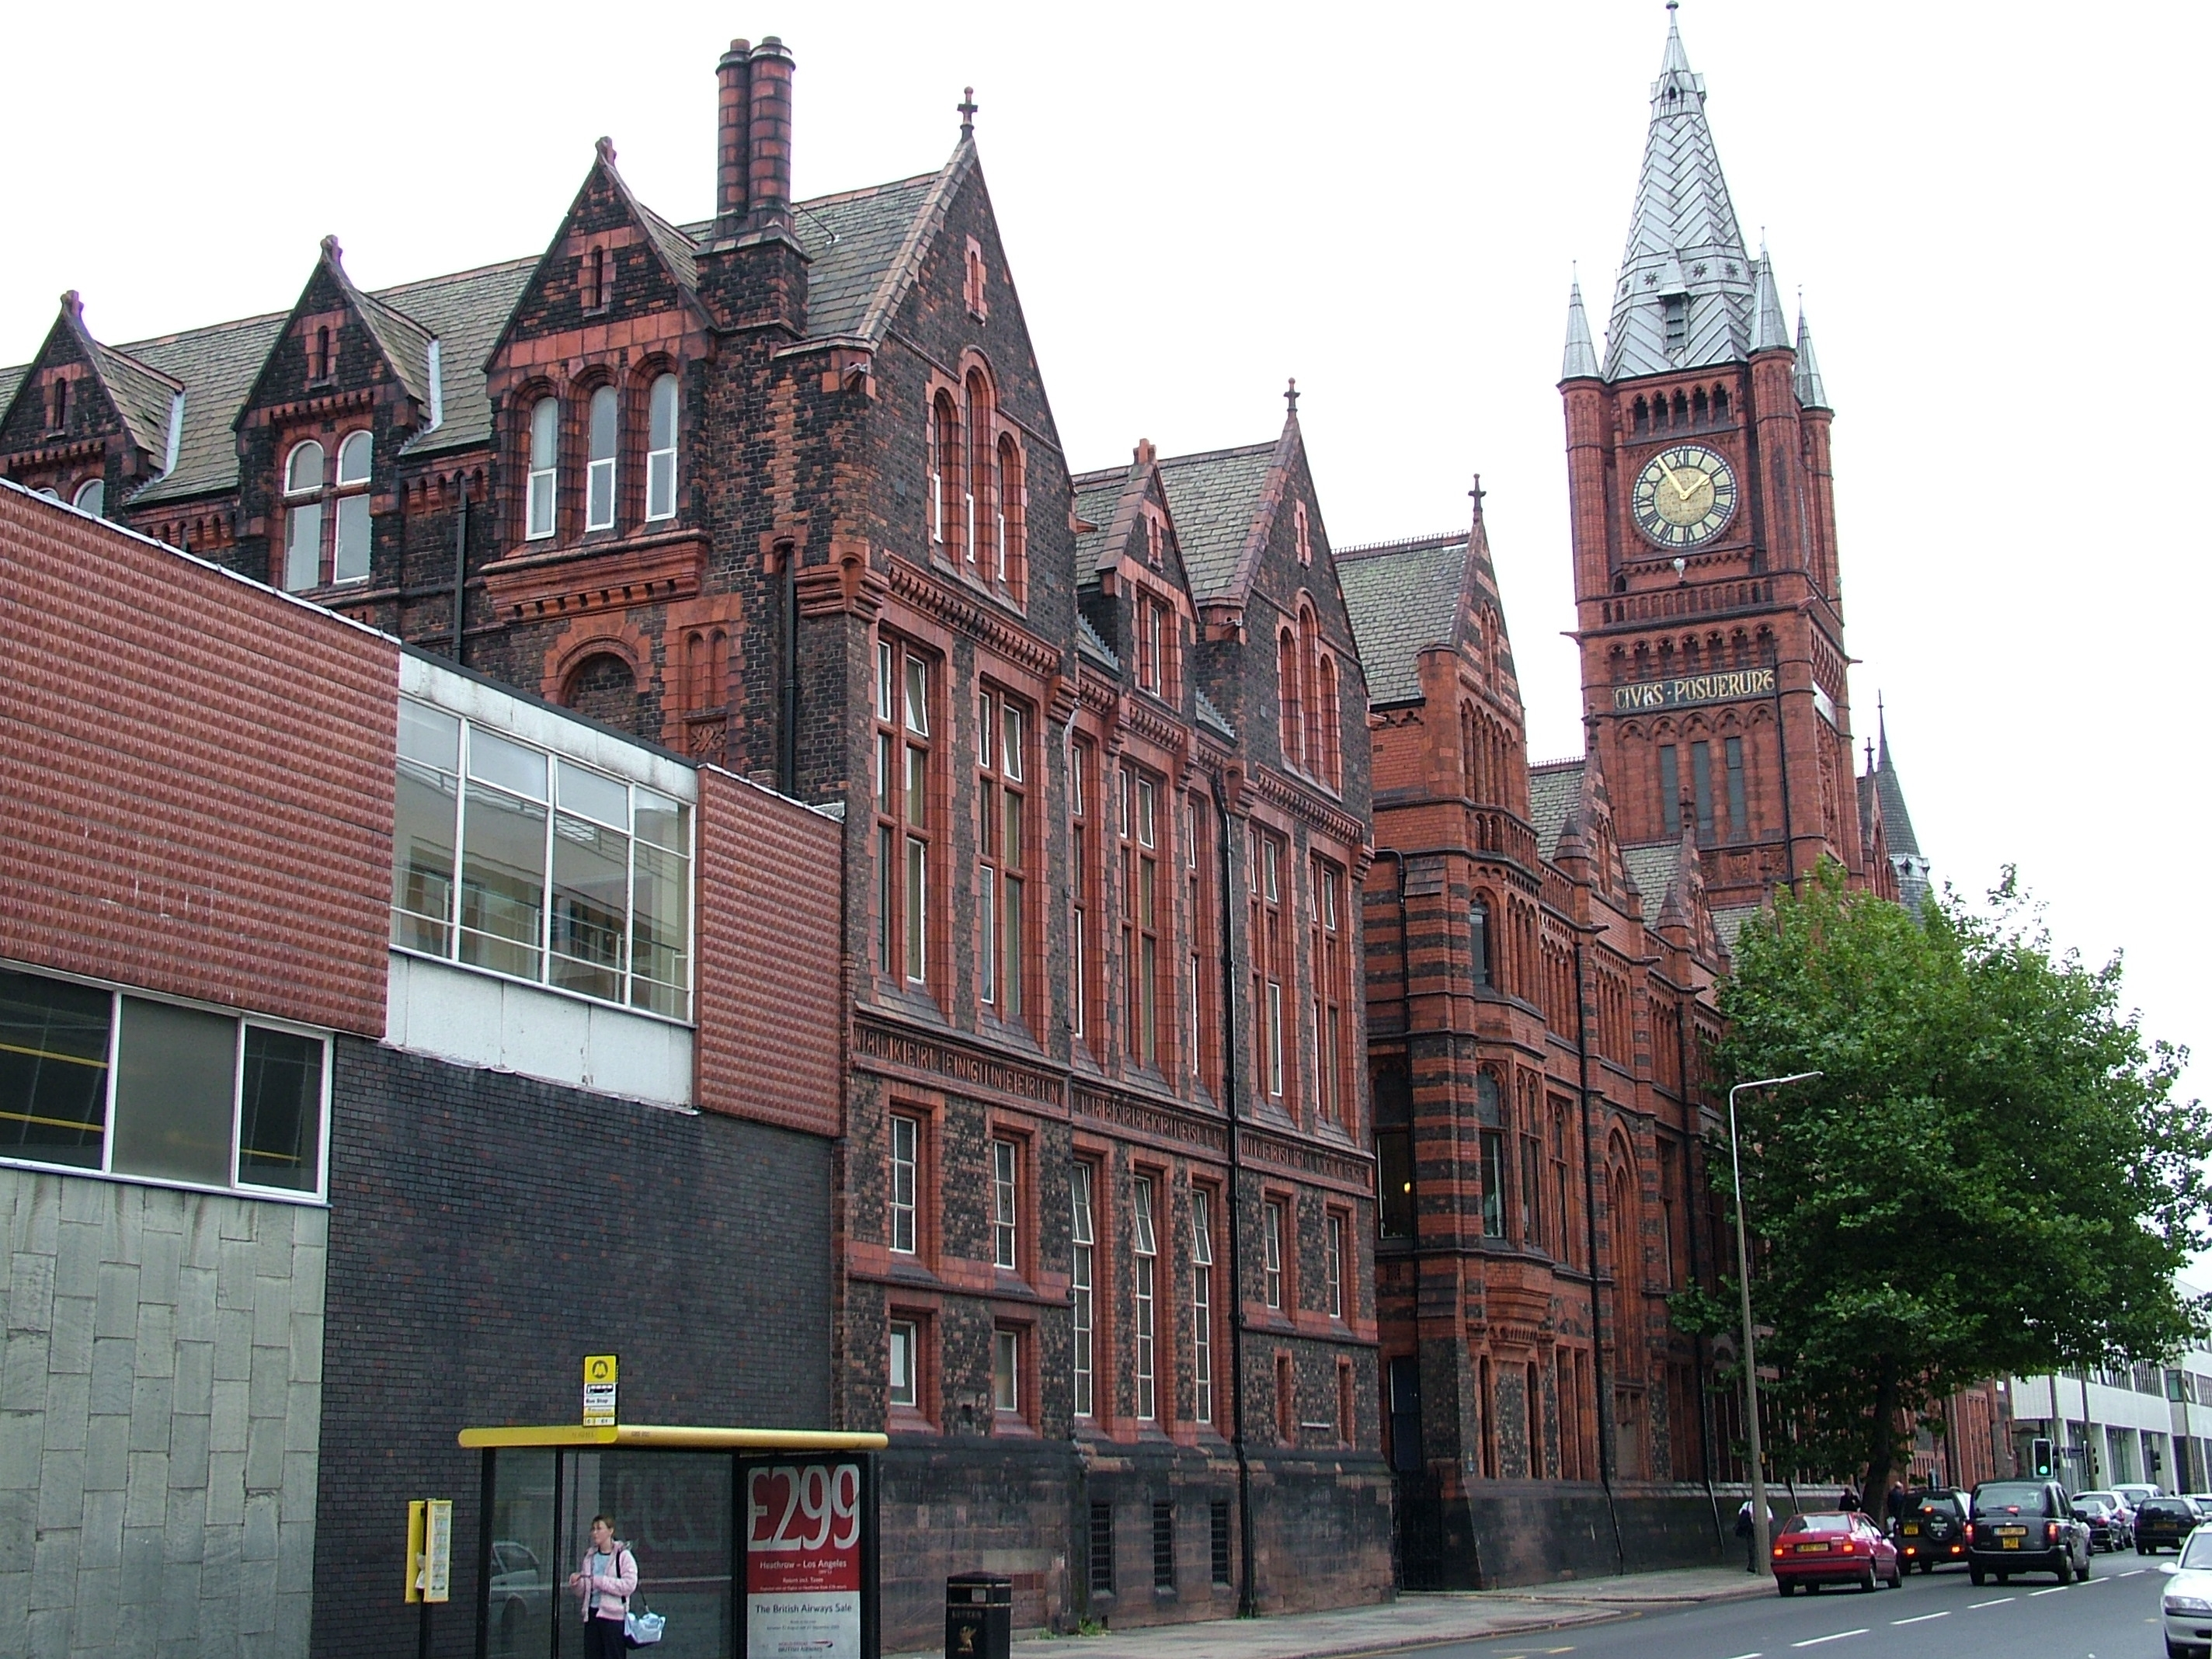 Grade II listed buildings in Liverpool-L3 - Wikipedia